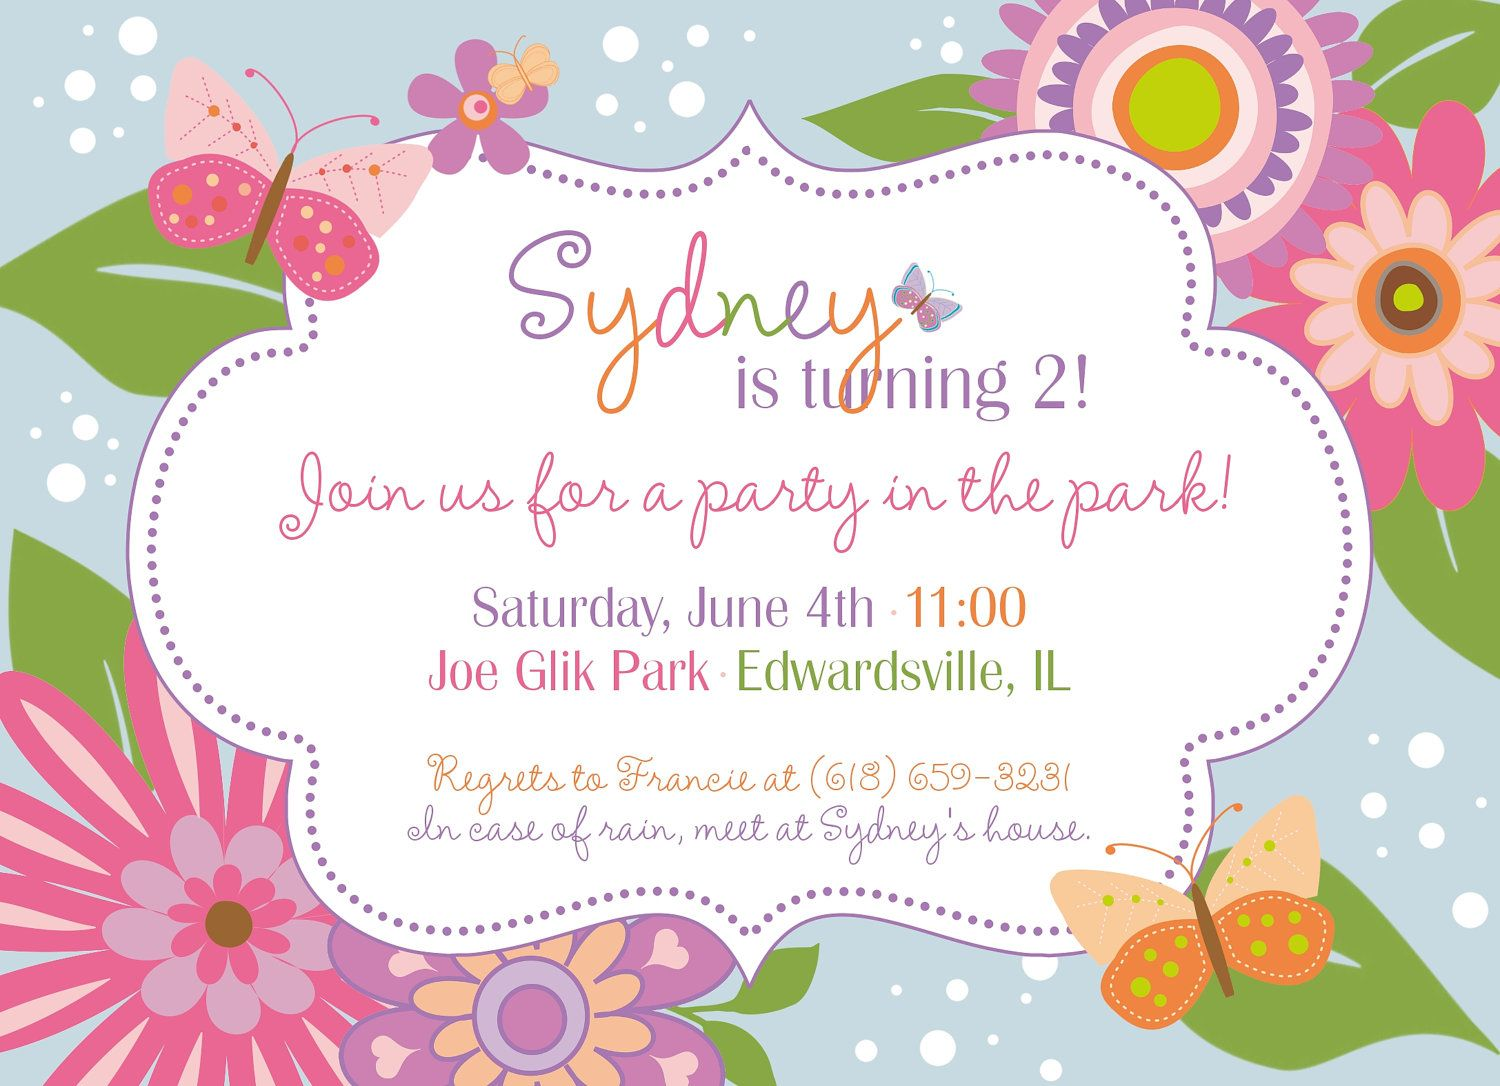 Garden Birthday Party Invitations EE73 Advancedmassagebysara